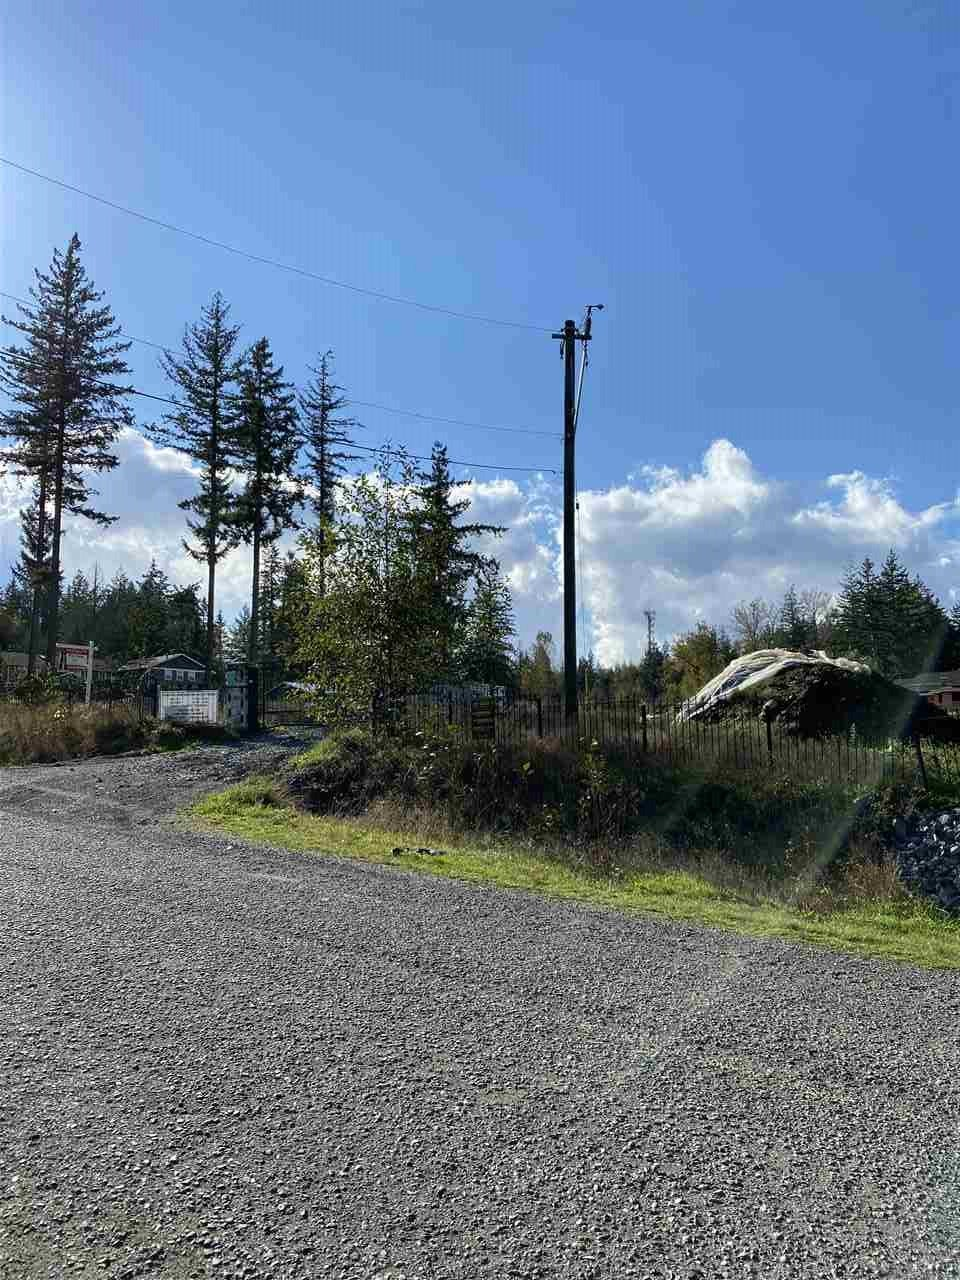 SL.1 161 208 STREET - Campbell Valley  for sale(R2511642) - #3